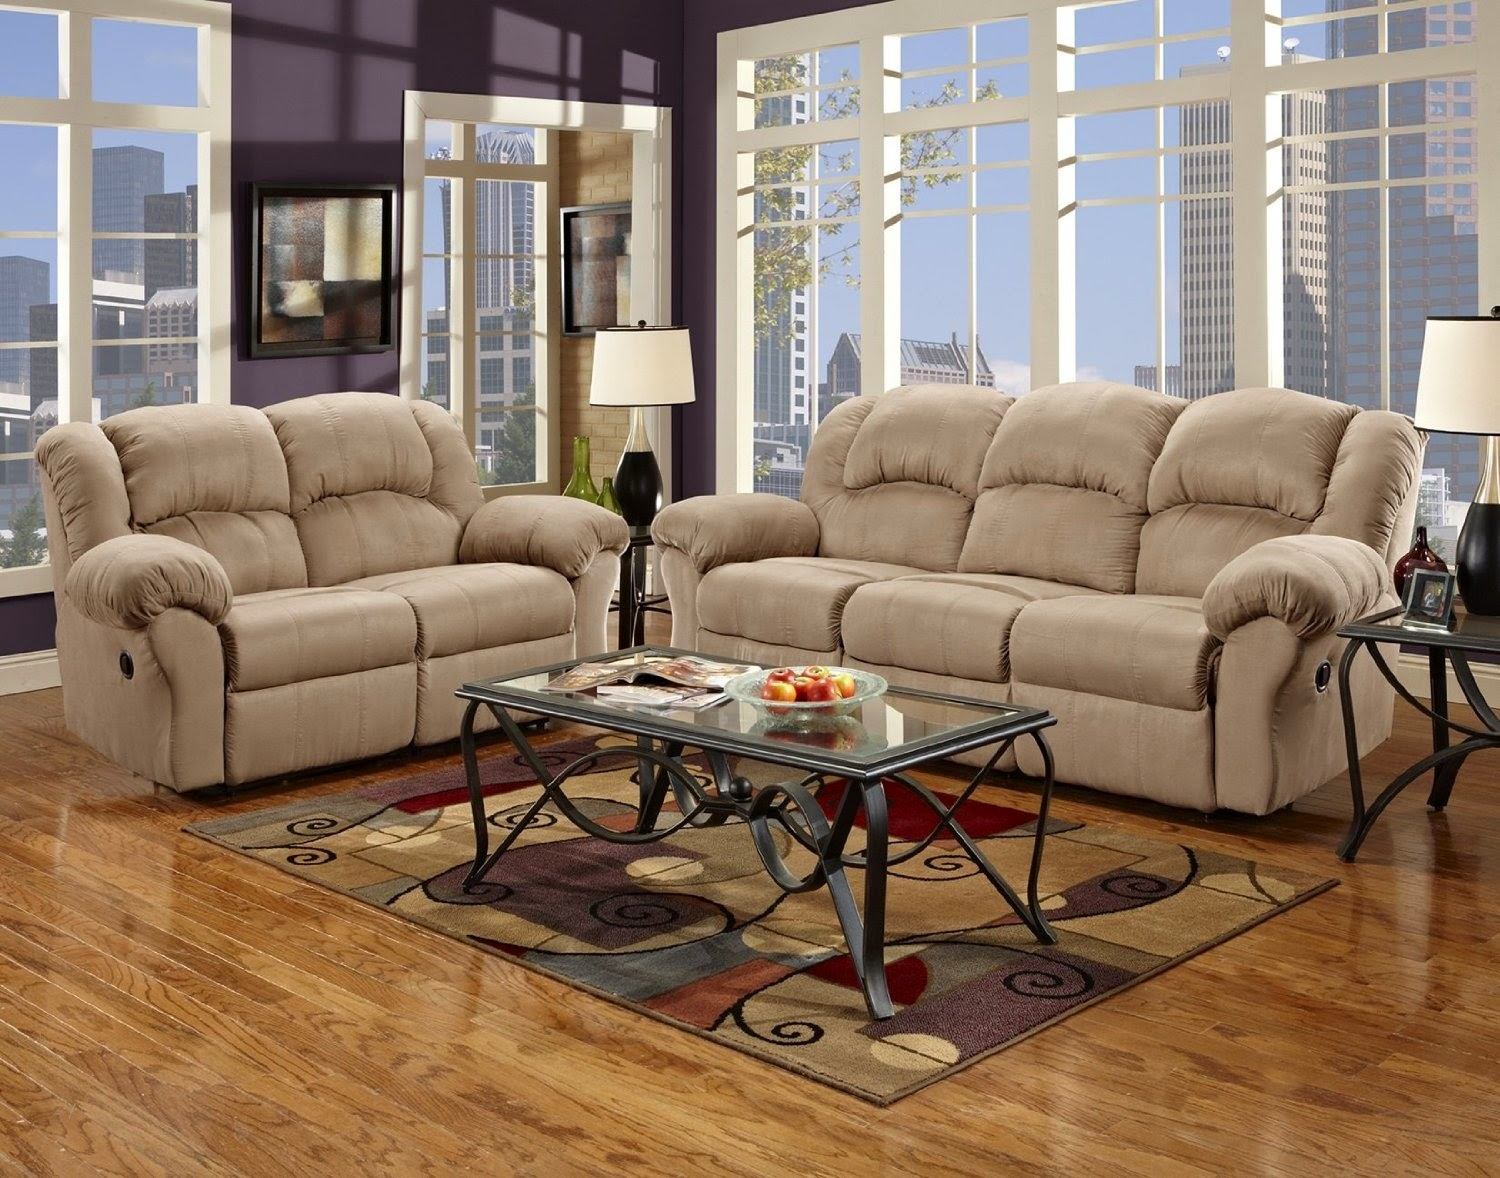 Pleasing Reclining Loveseats For Sale Mysterabbit Com Gmtry Best Dining Table And Chair Ideas Images Gmtryco